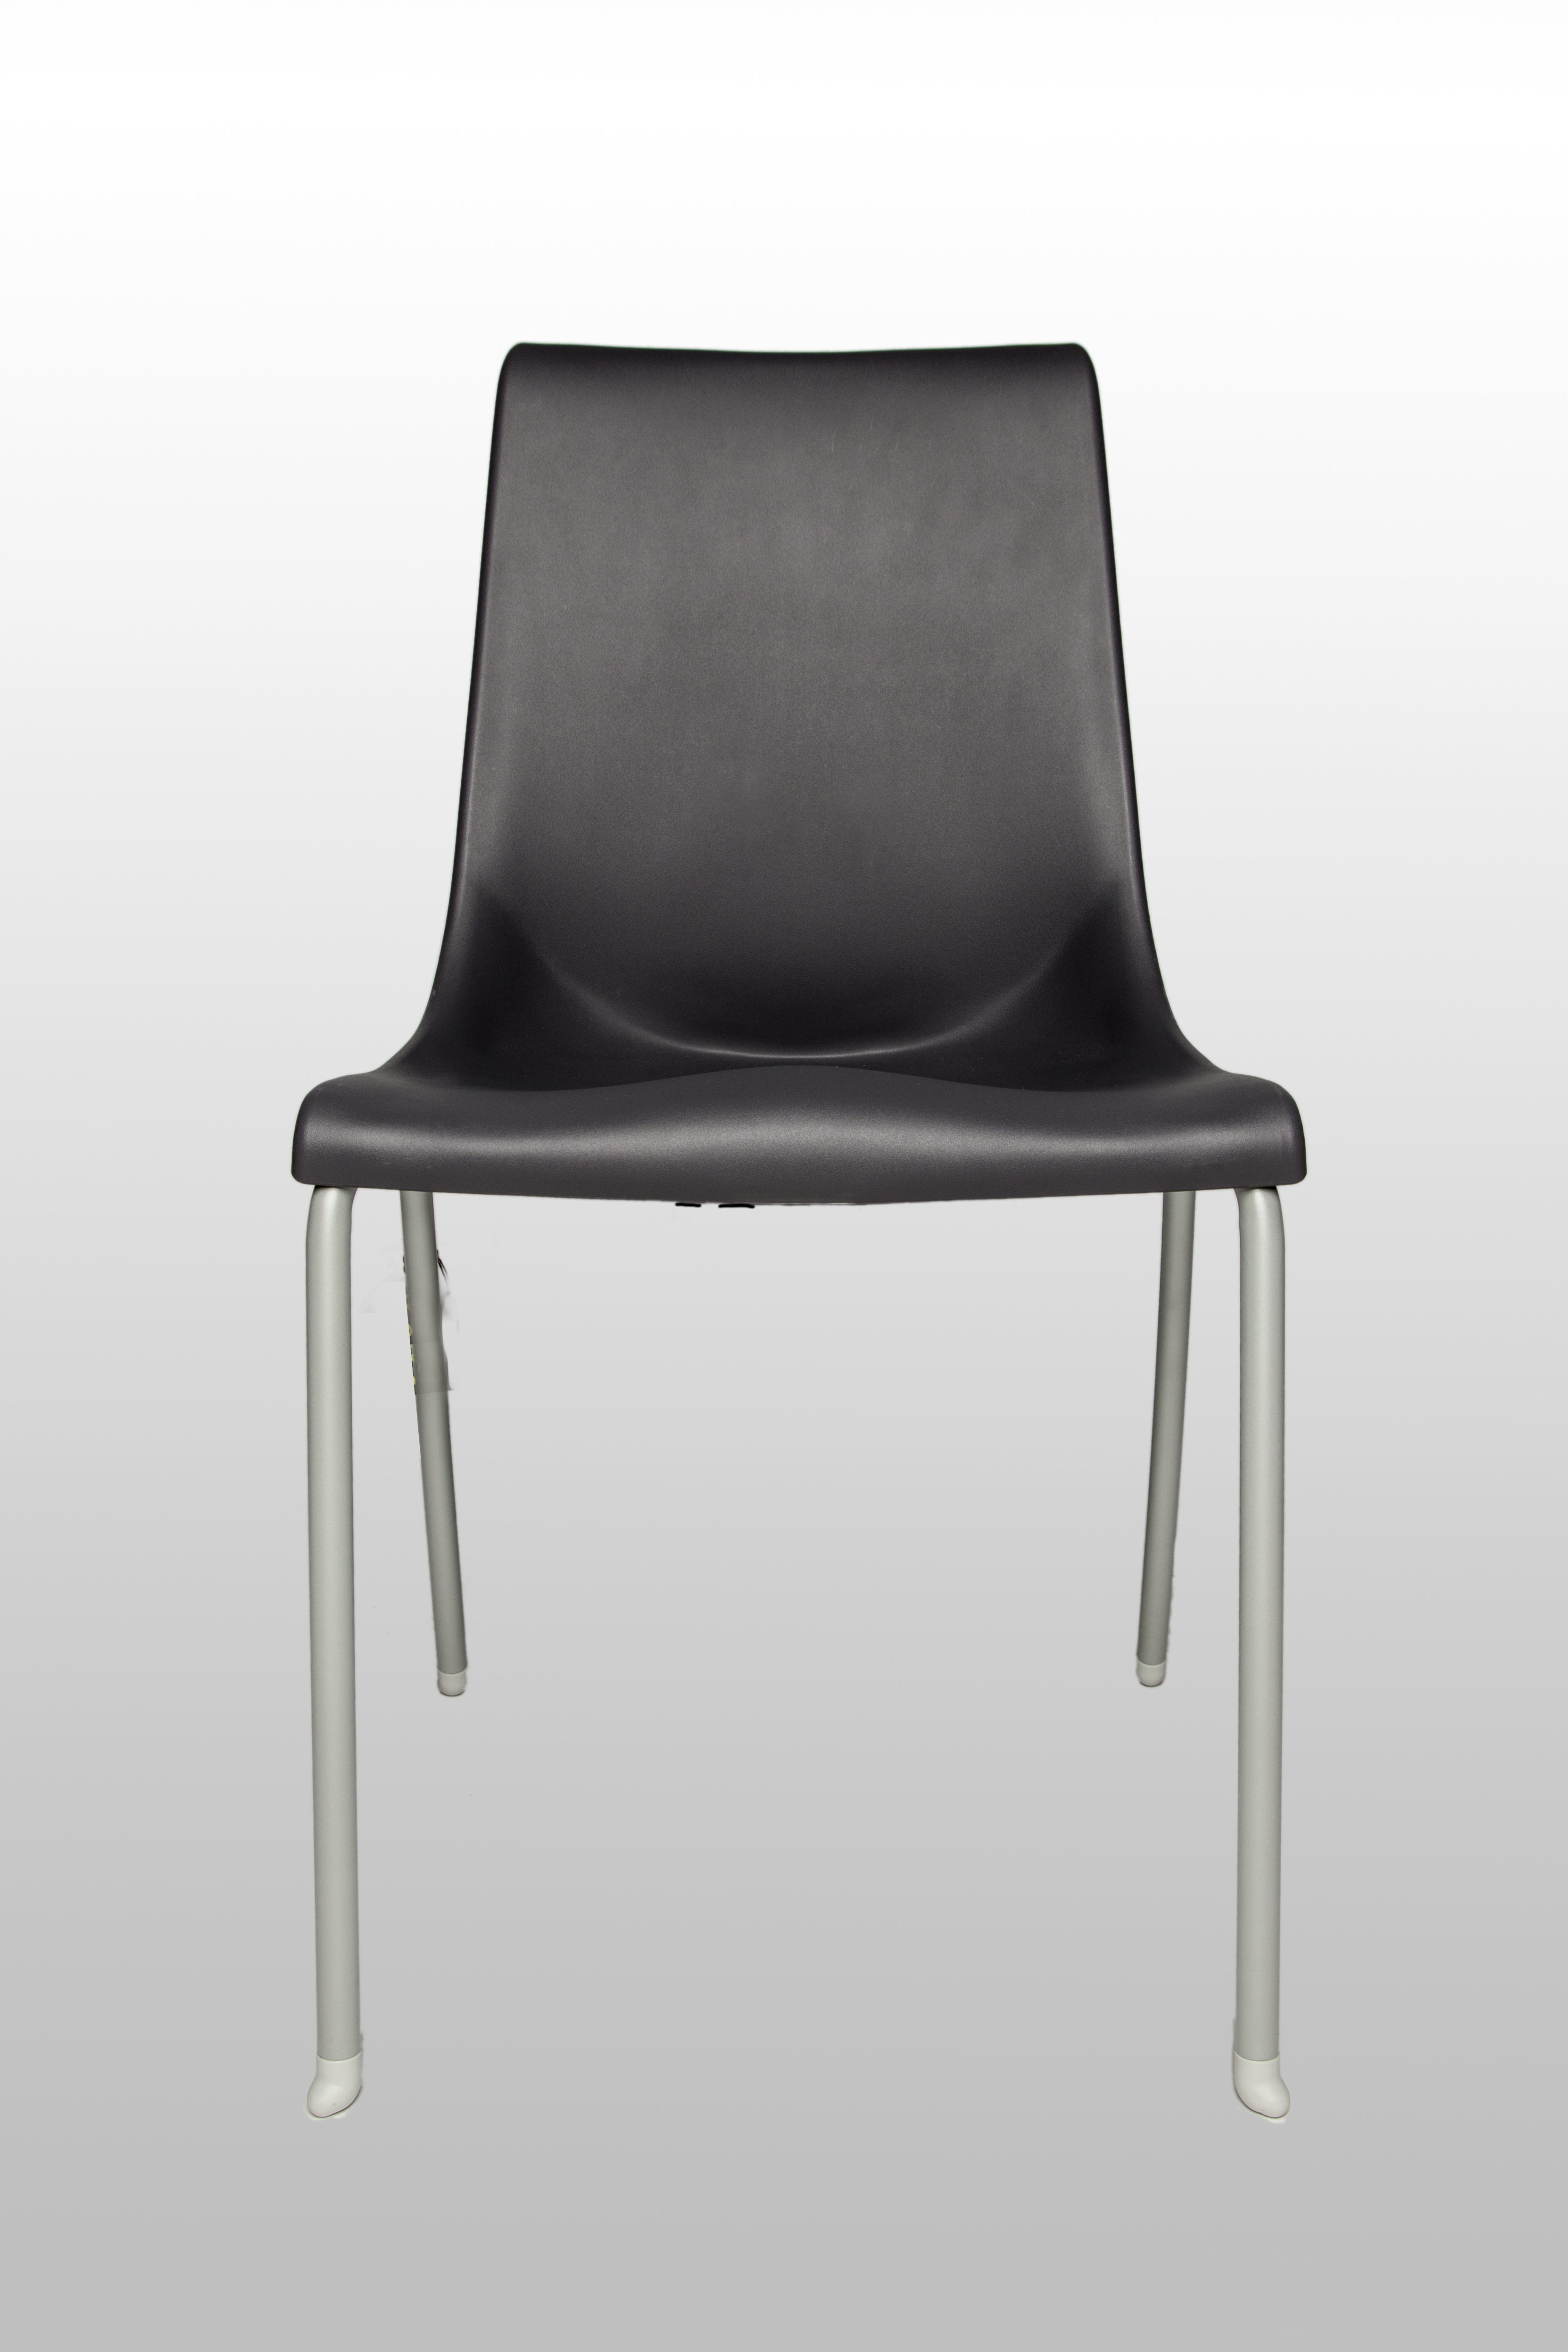 Image Is Loading BONALDO 4 Set Hydra Chairs Grey Charcoal Made